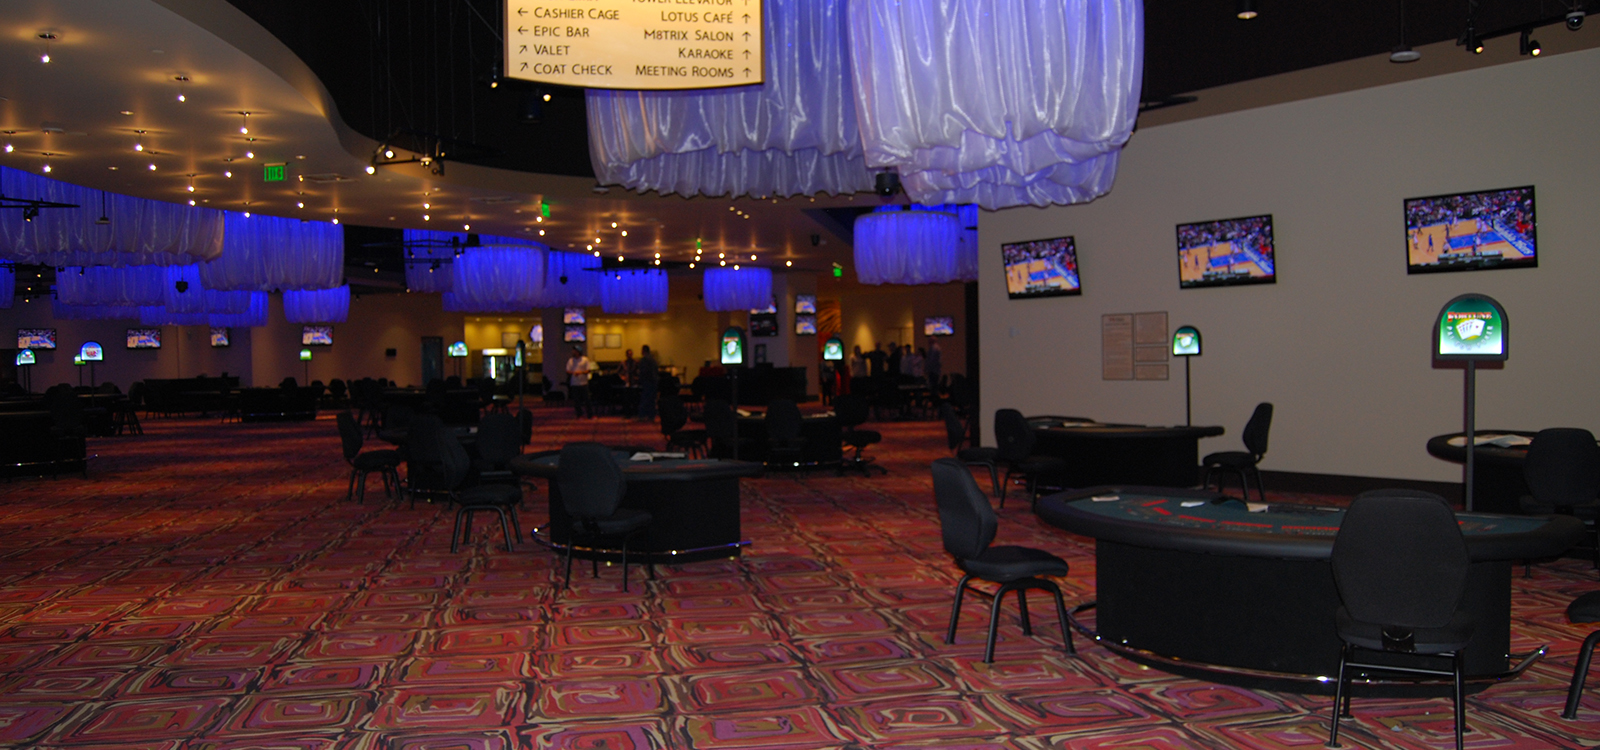 inside view of tables at the casino matrix